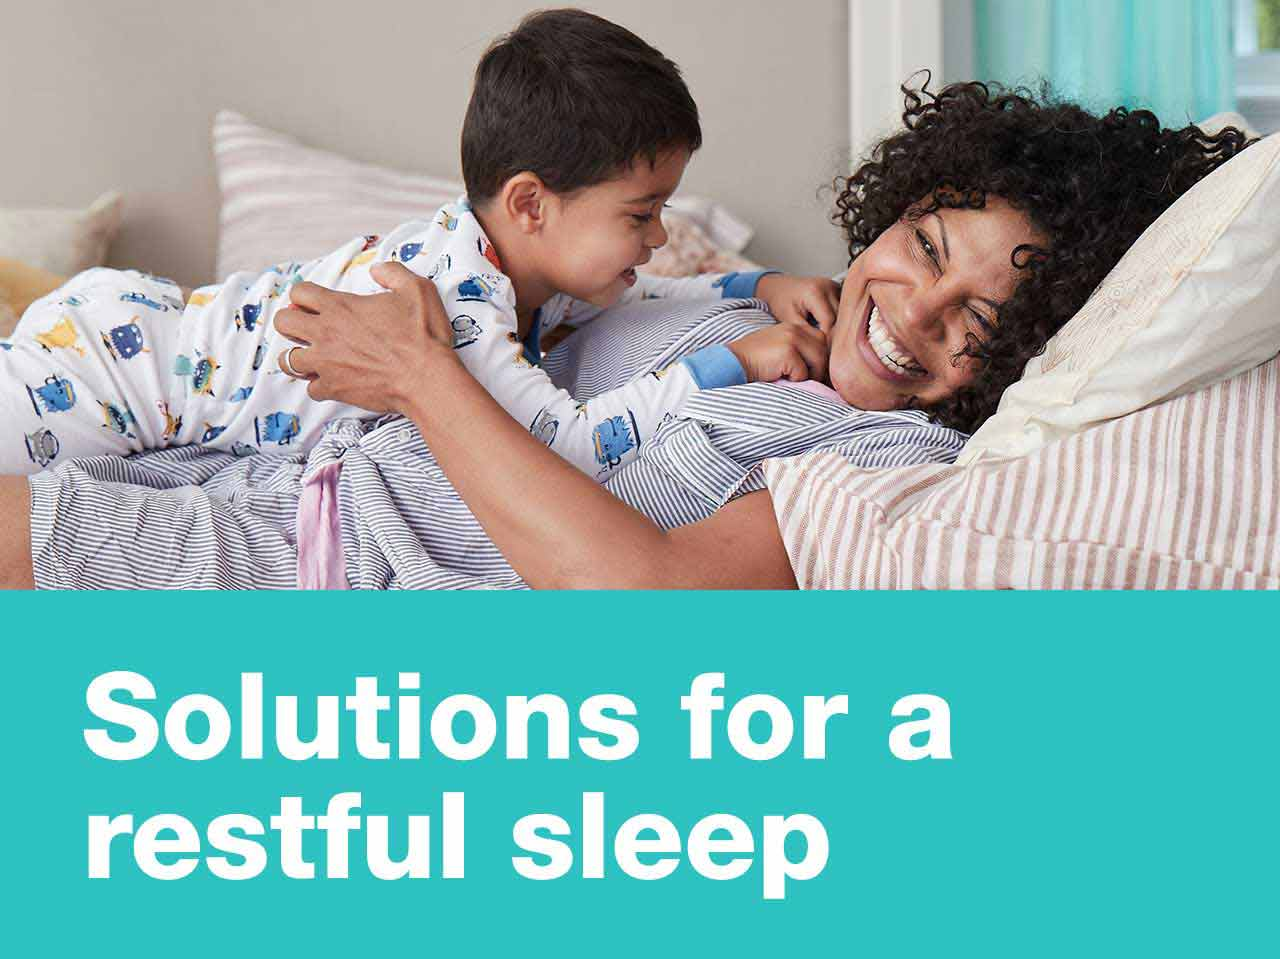 Solutions for a restful sleep.